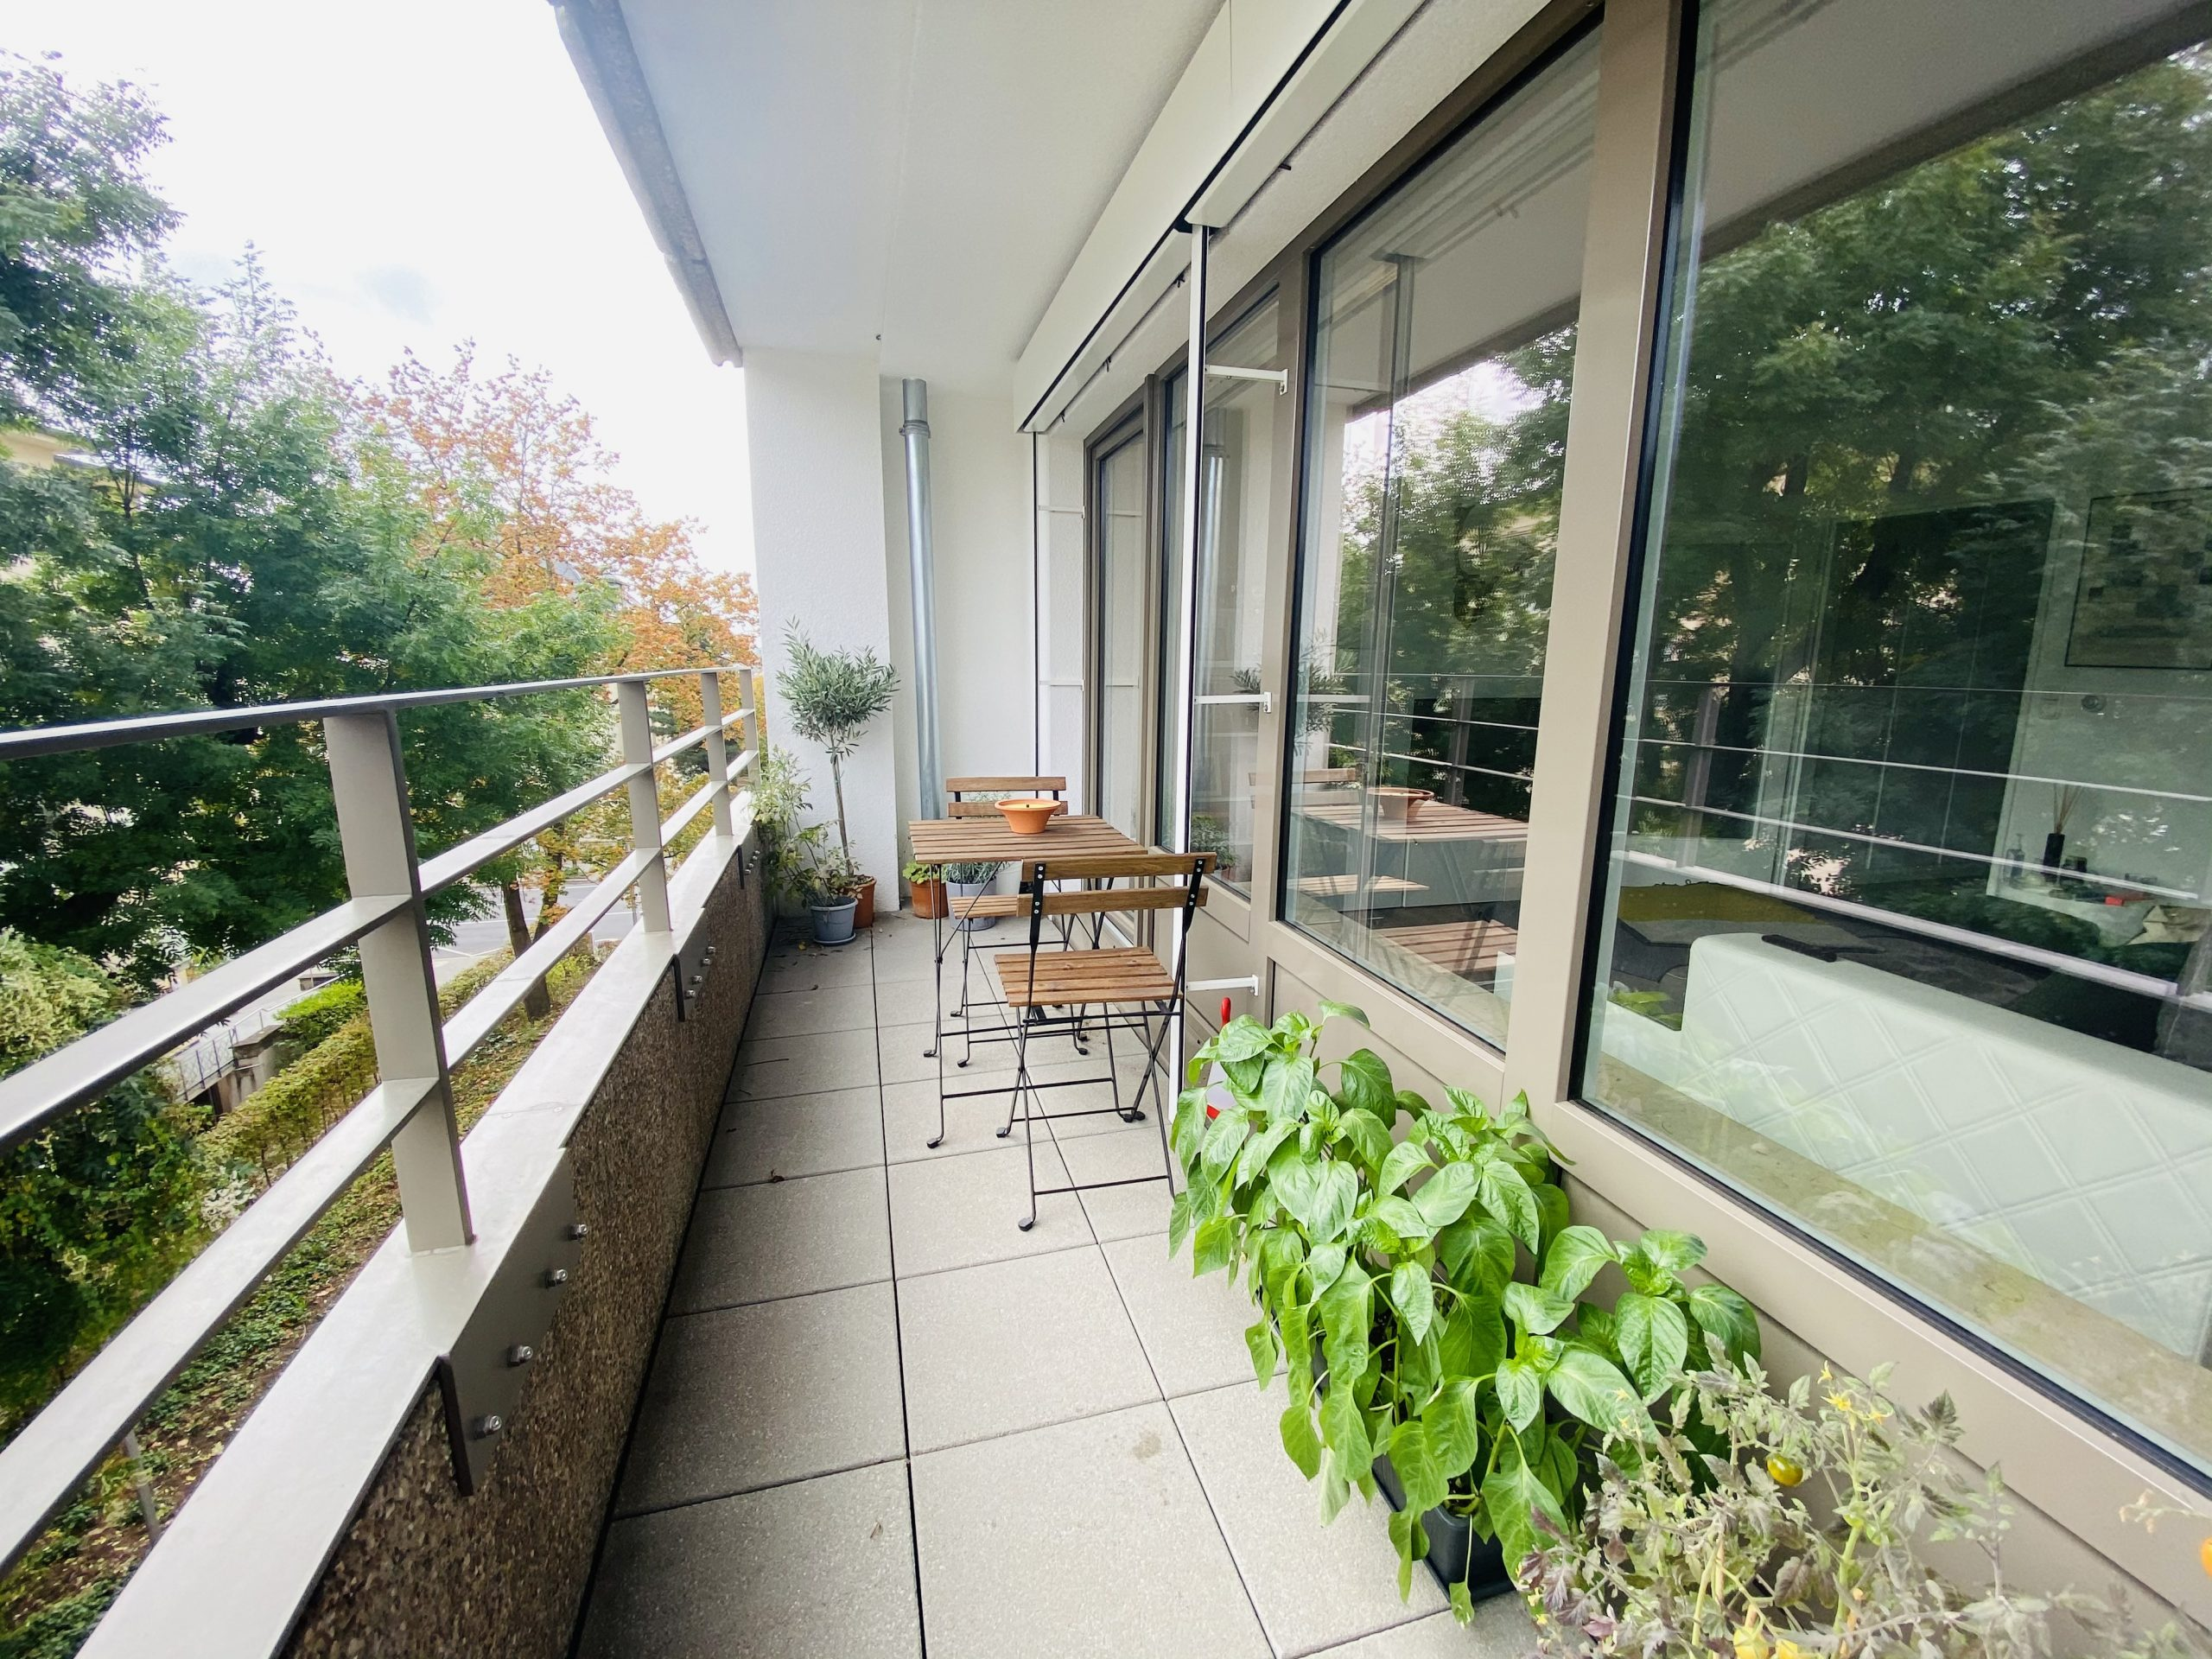 Luxembourg-Belair: Appartement 1 chambre